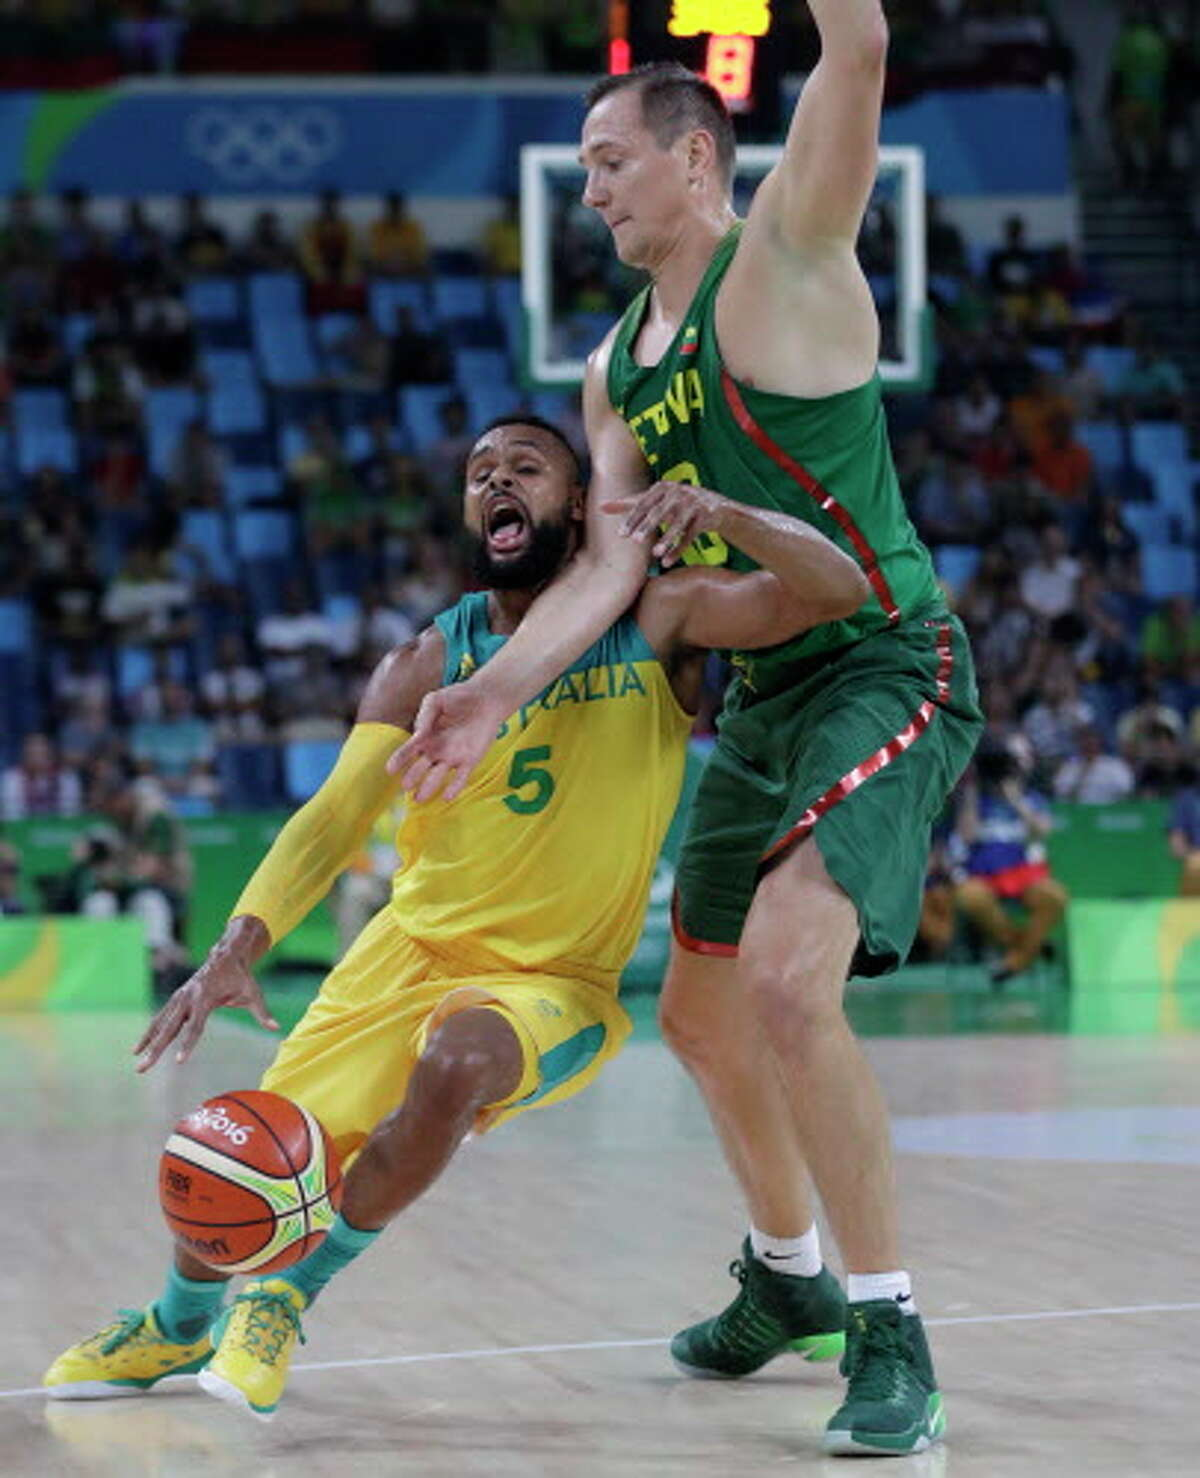 Australia's Patty Mills (5) is fouled by Lithuania's Paulius Jankunas (13) during a men's quarterfinal round basketball game against Australia at the 2016 Summer Olympics in Rio de Janeiro, Brazil, Wednesday, Aug. 17, 2016. (AP Photo/Eric Gay)